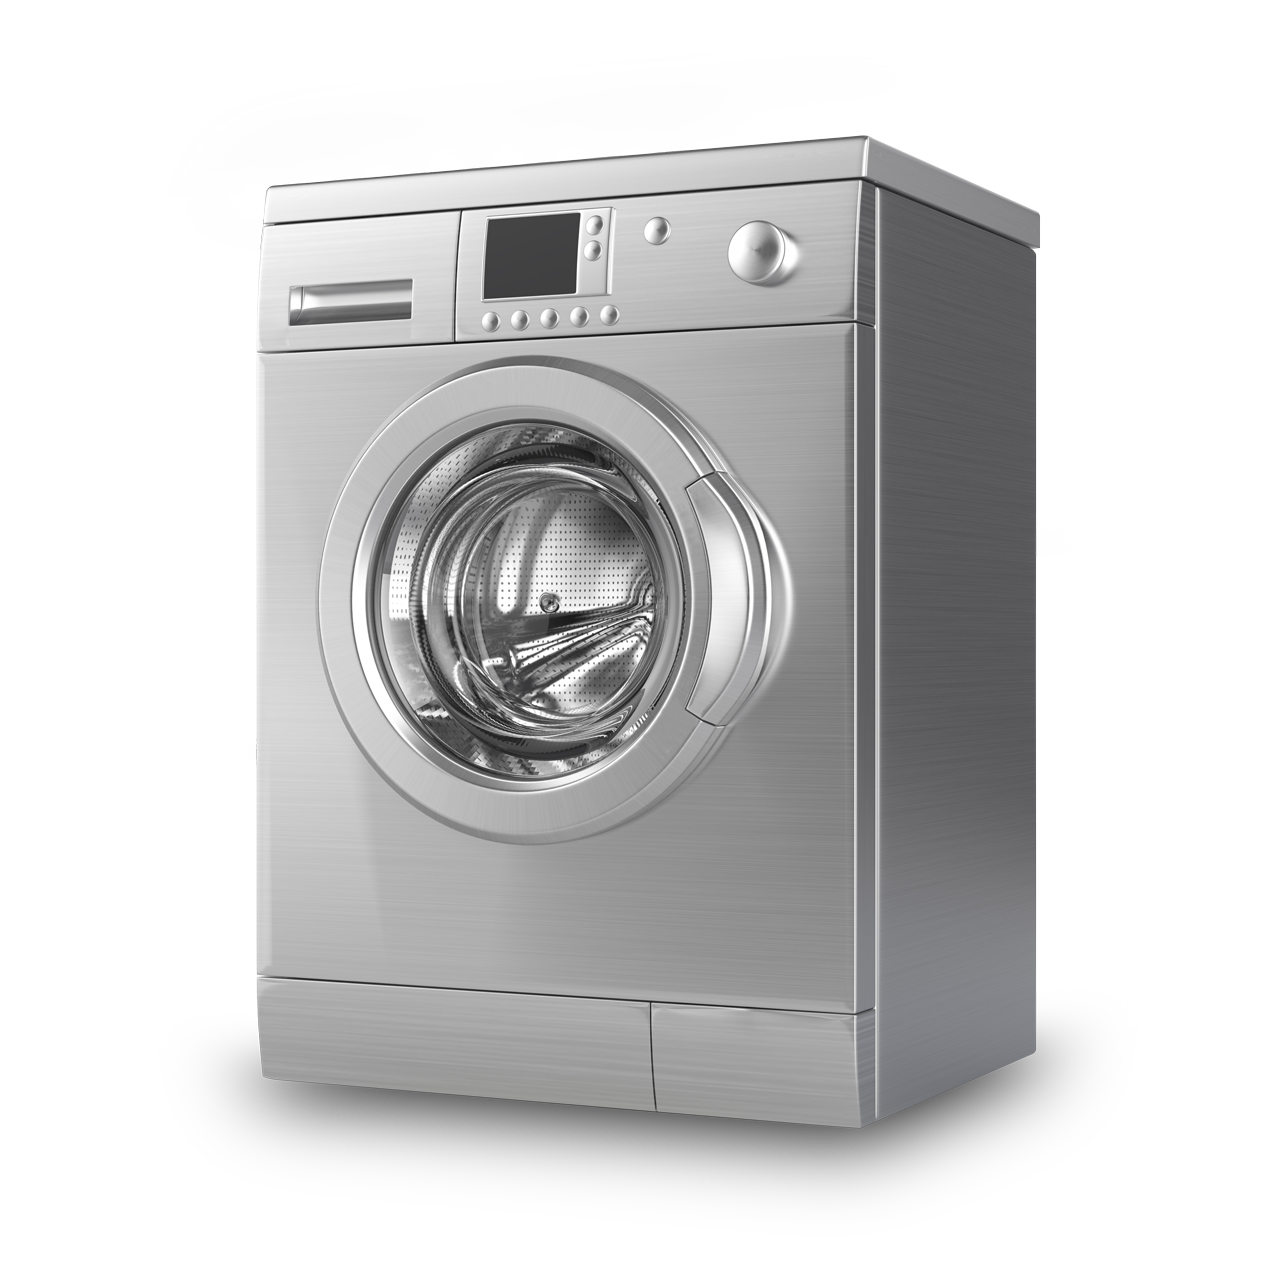 Stainless steel GE clothes dryer